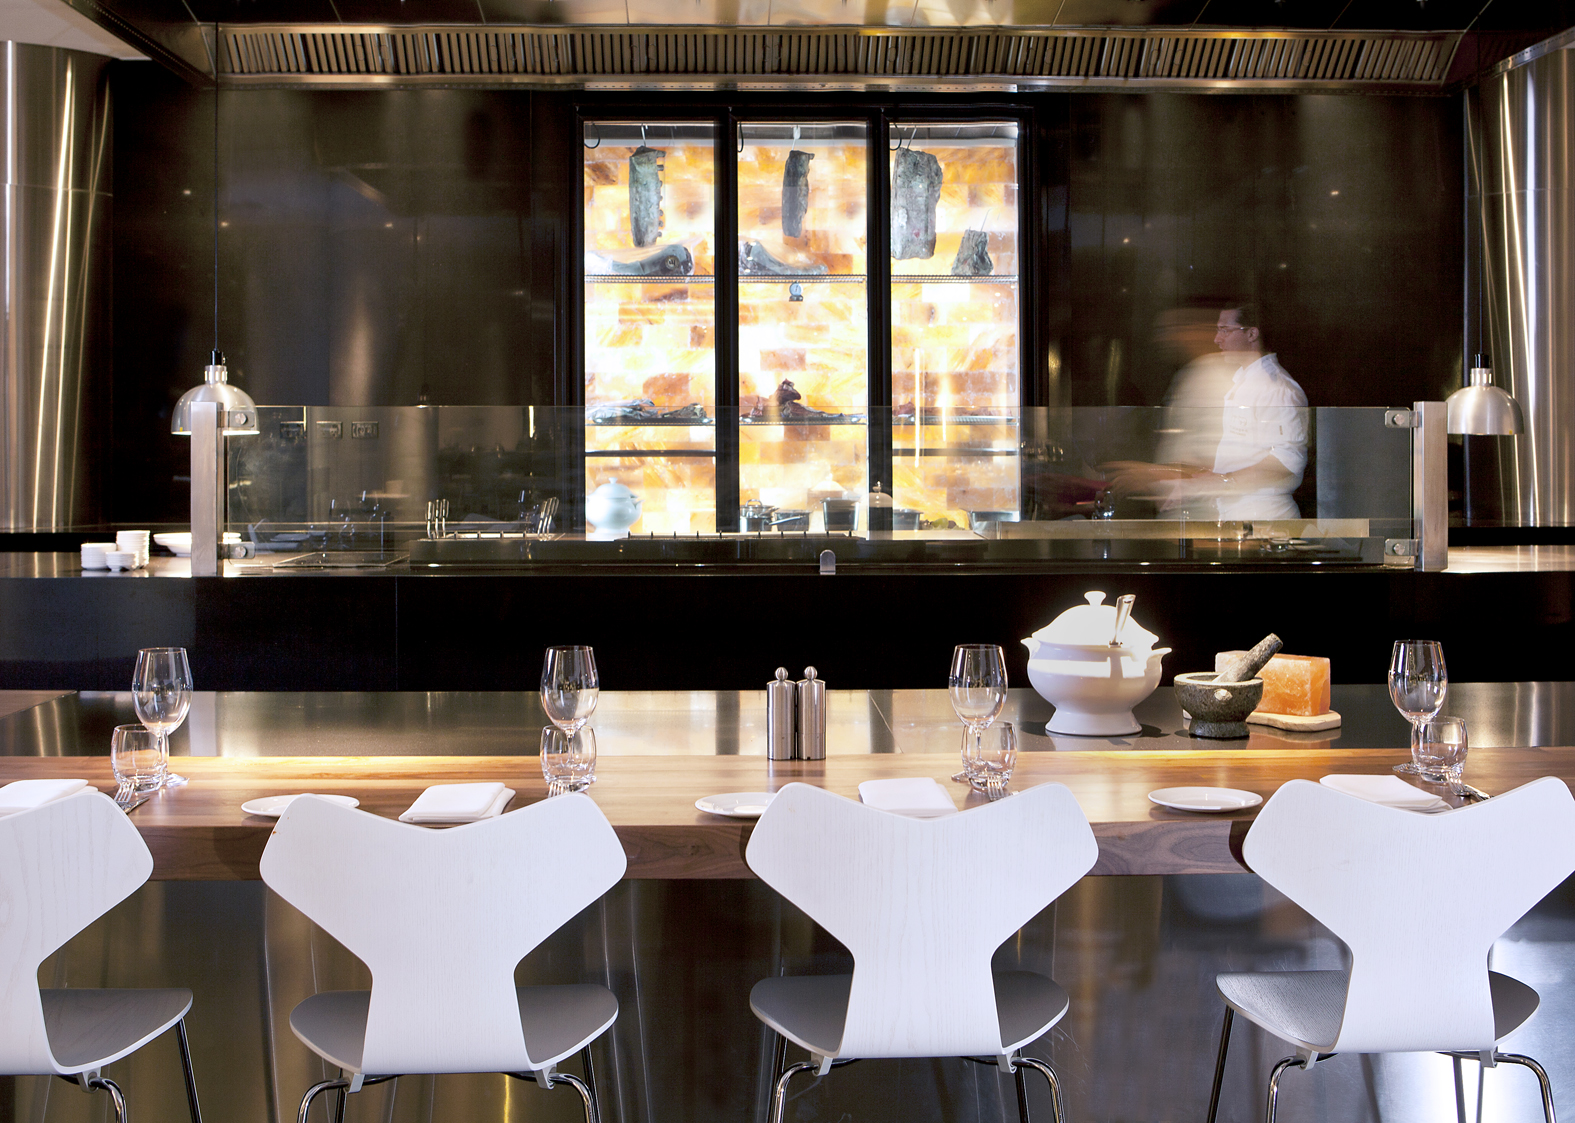 The Brisbane Hilton Hotel's Vintaged grill and chef table